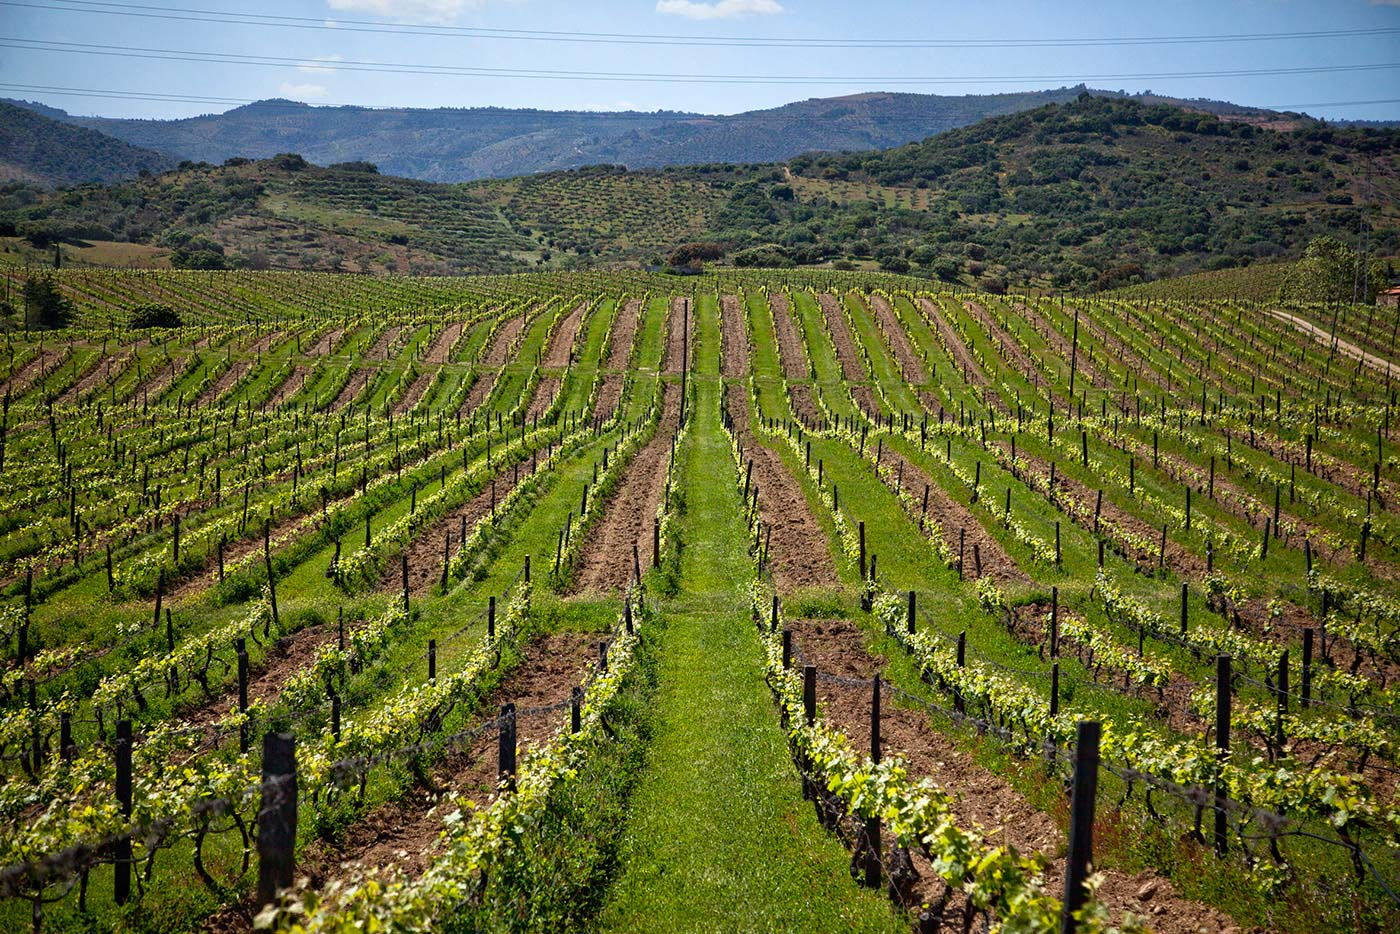 Cover crops sown in alternate rows in Quinta do Ataide